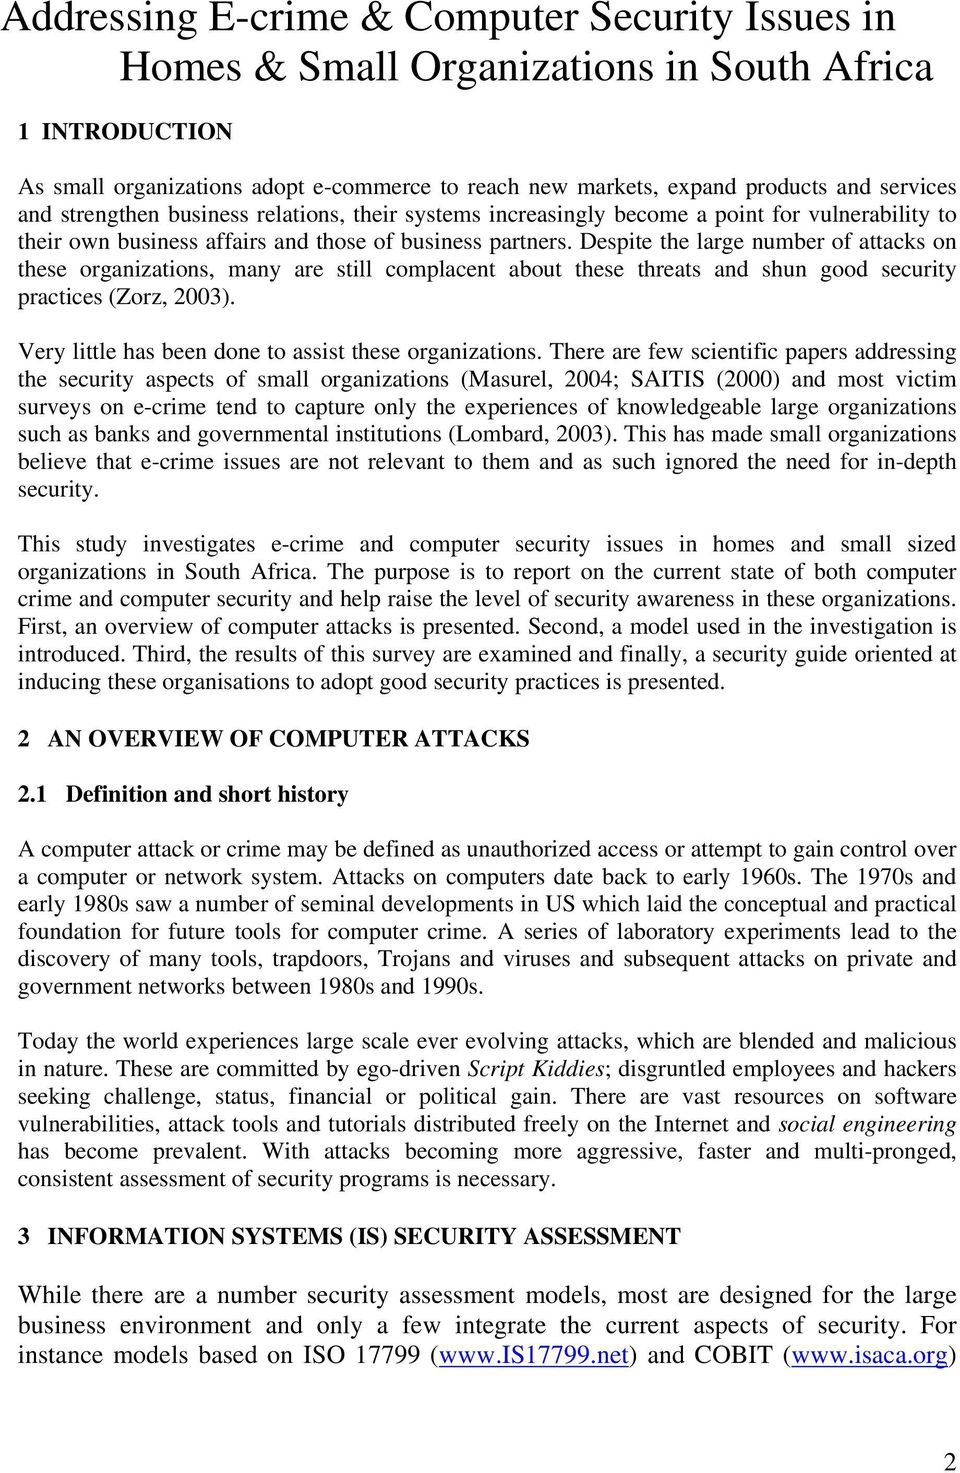 Despite the large number of attacks on these organizations, many are still complacent about these threats and shun good security practices (Zorz, 2003).